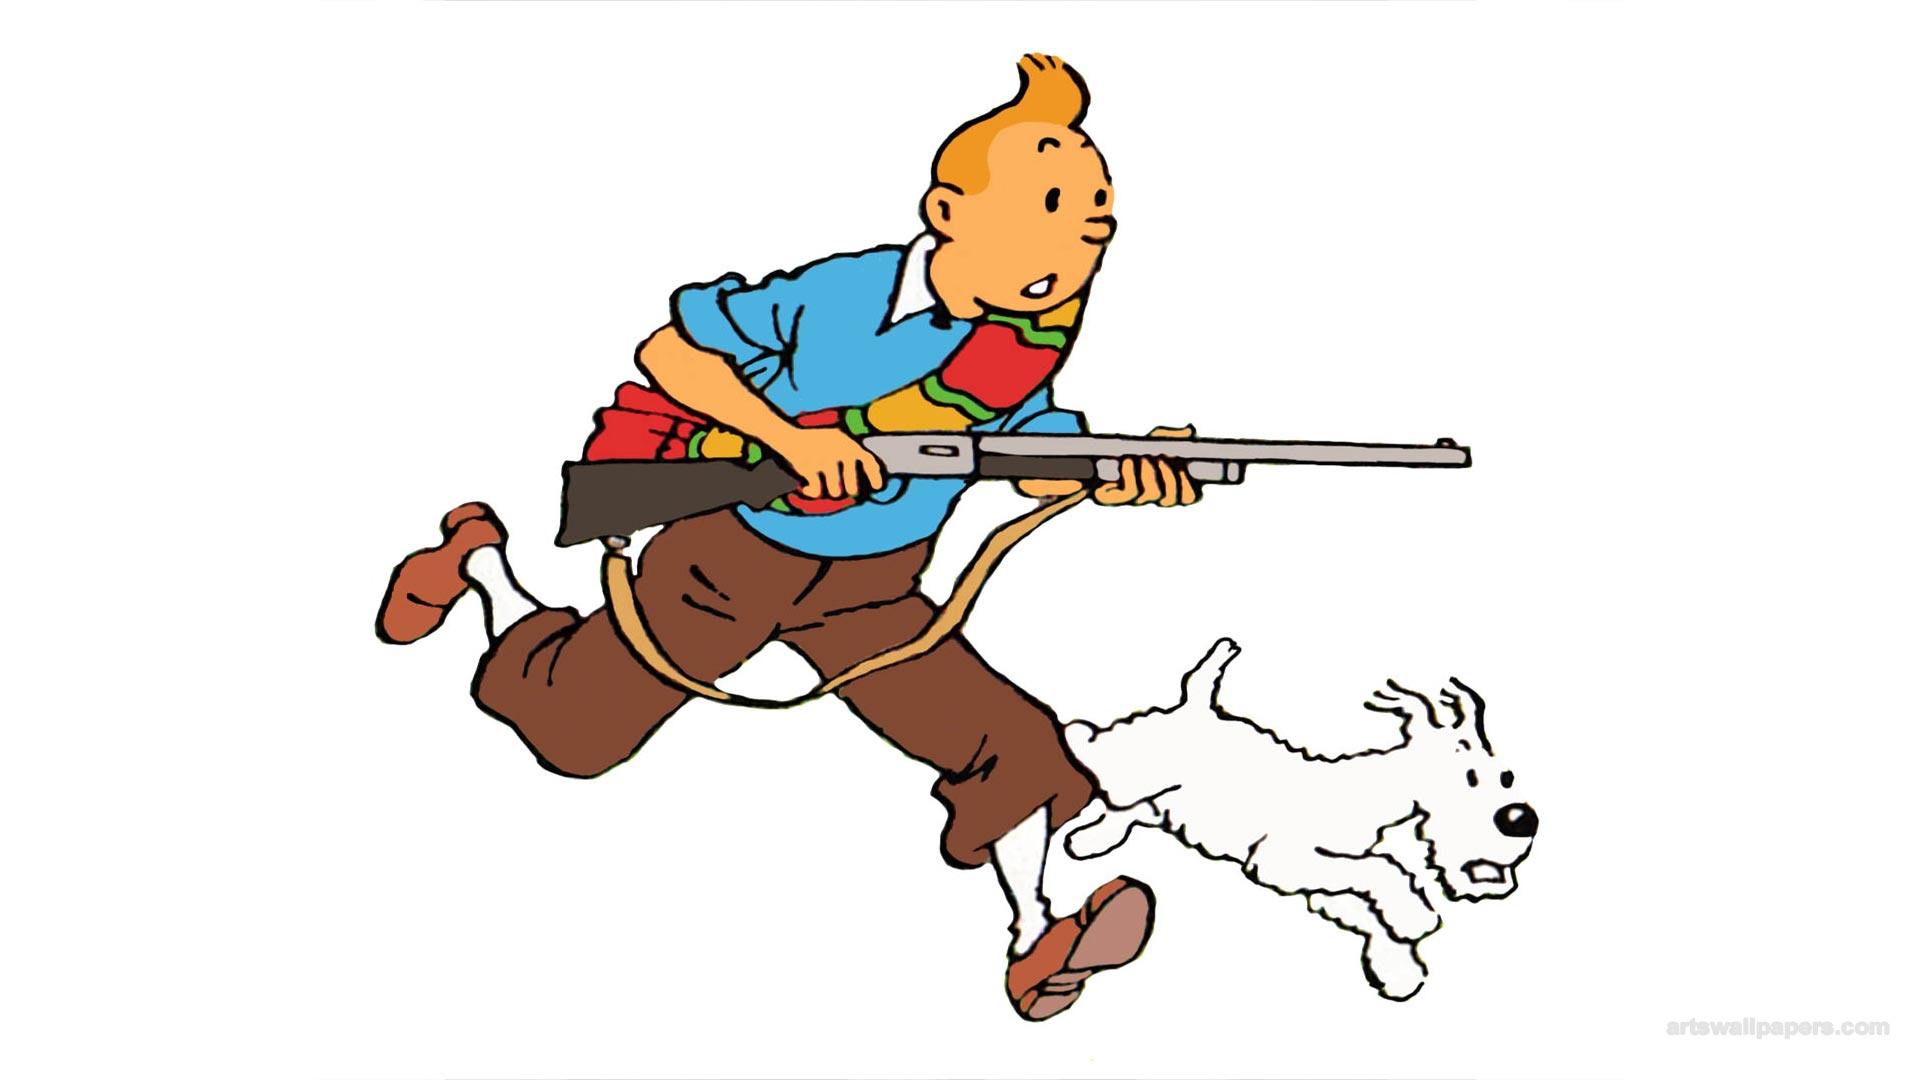 tintin wallpaper wide - photo #37